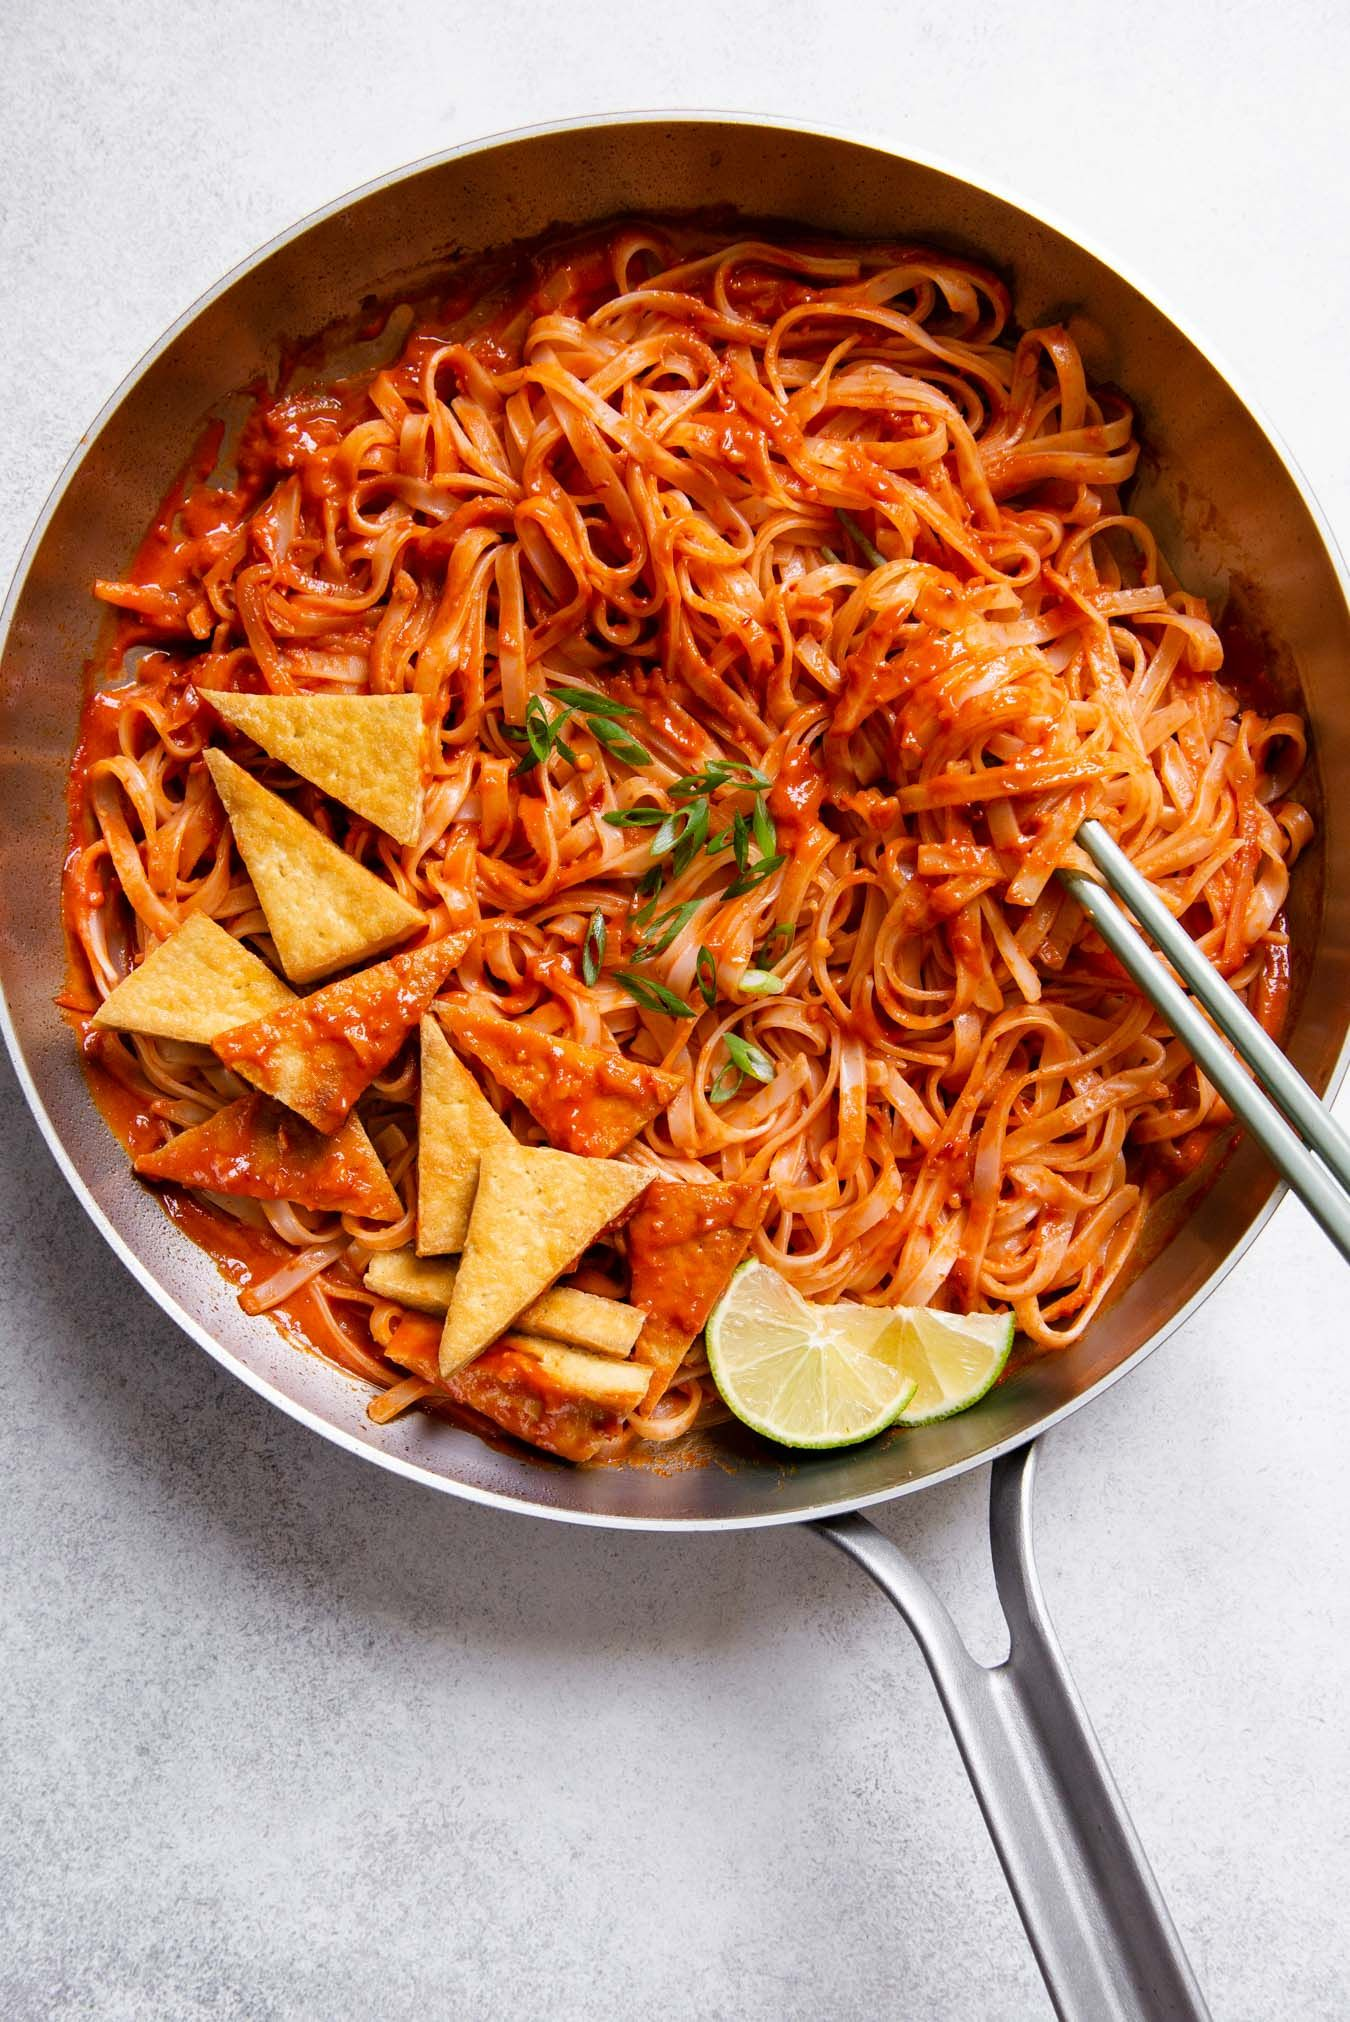 30 Minute Spicy Sambal Noodles With Pan Fried Tofu Recipe In 2020 Fried Tofu Pan Fried Tofu Spicy Noodles